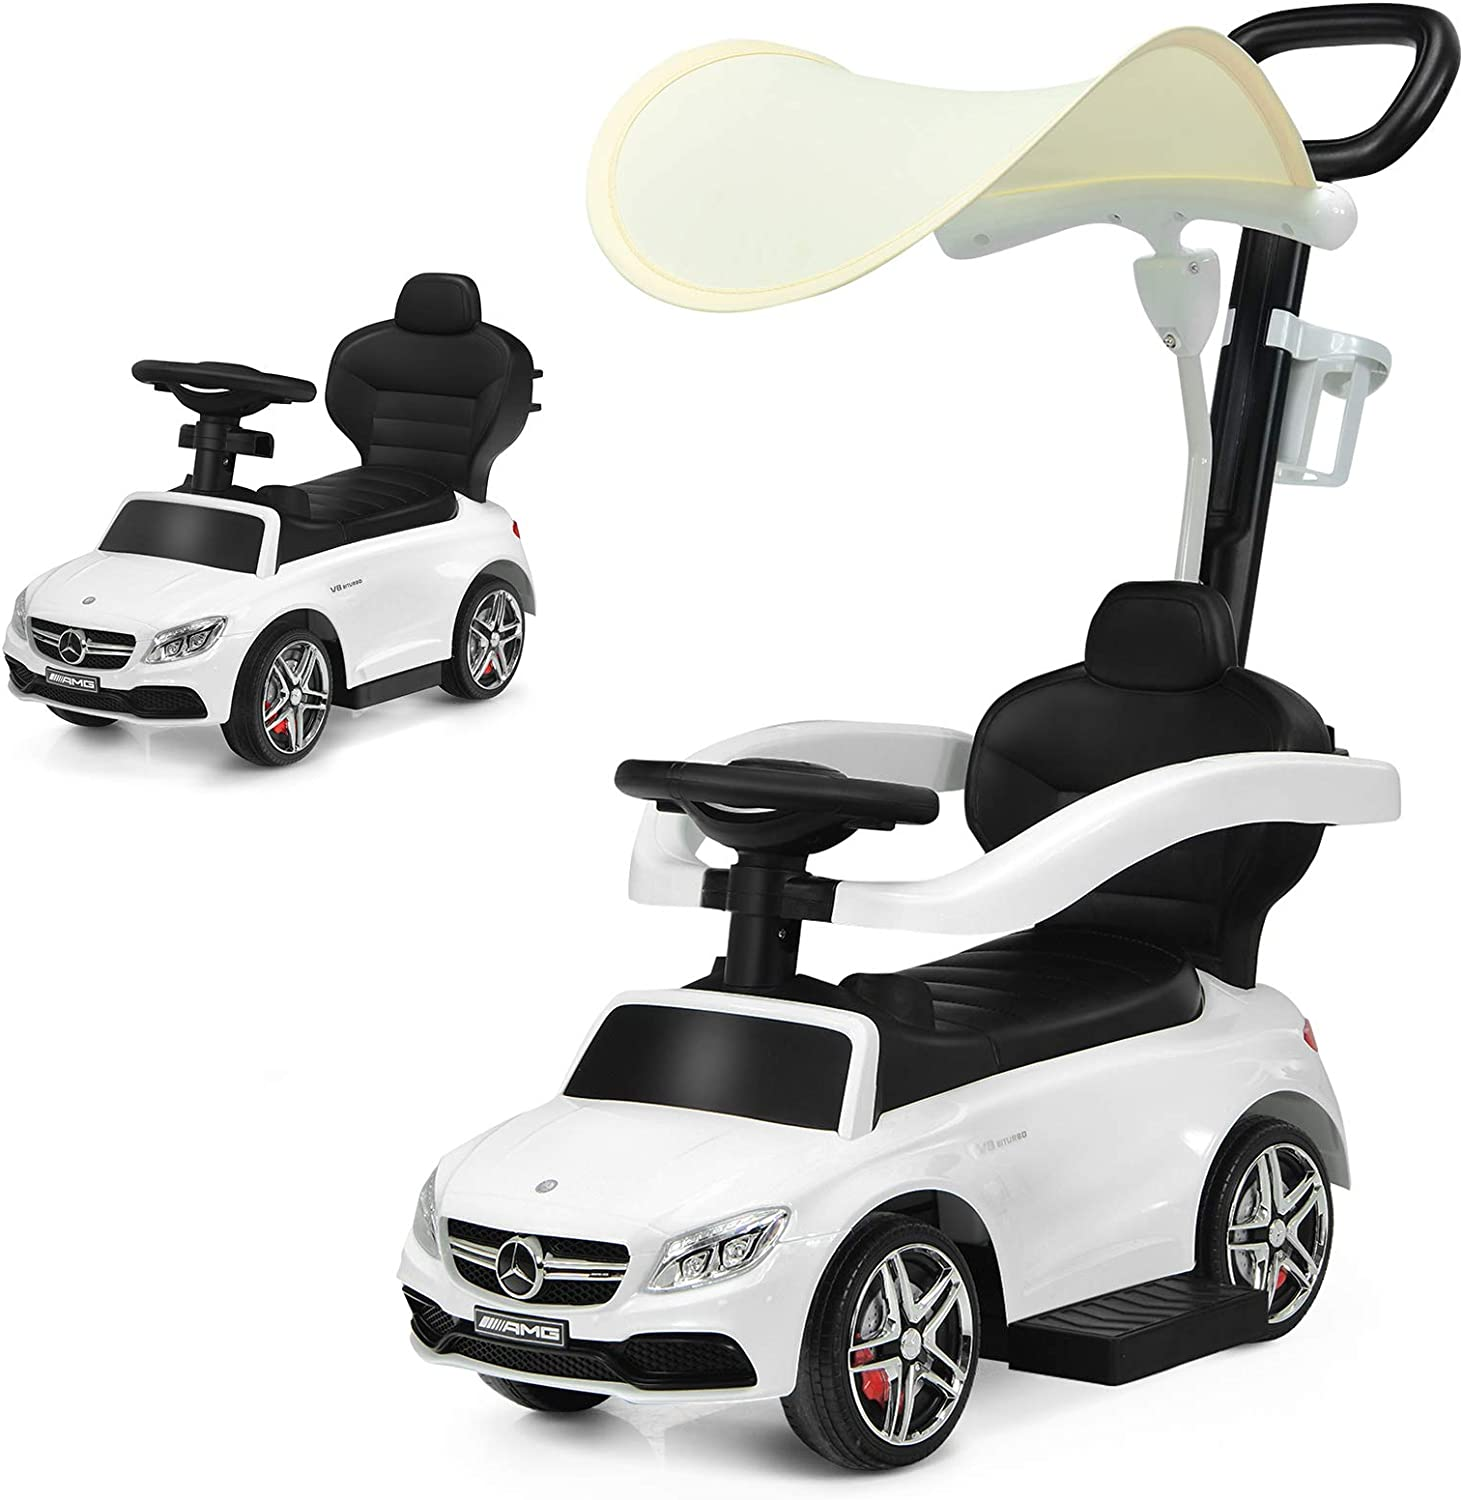 Costzon 3 in 1 Ride On Push Car, Mercedes Benz Stroller Sliding Walking Car with Handle, Sun Canopy, Safety Bar, Cup Holder, Music, Horn, Underneath Storage, Ride-on Toy for Toddlers Boys Girls, White